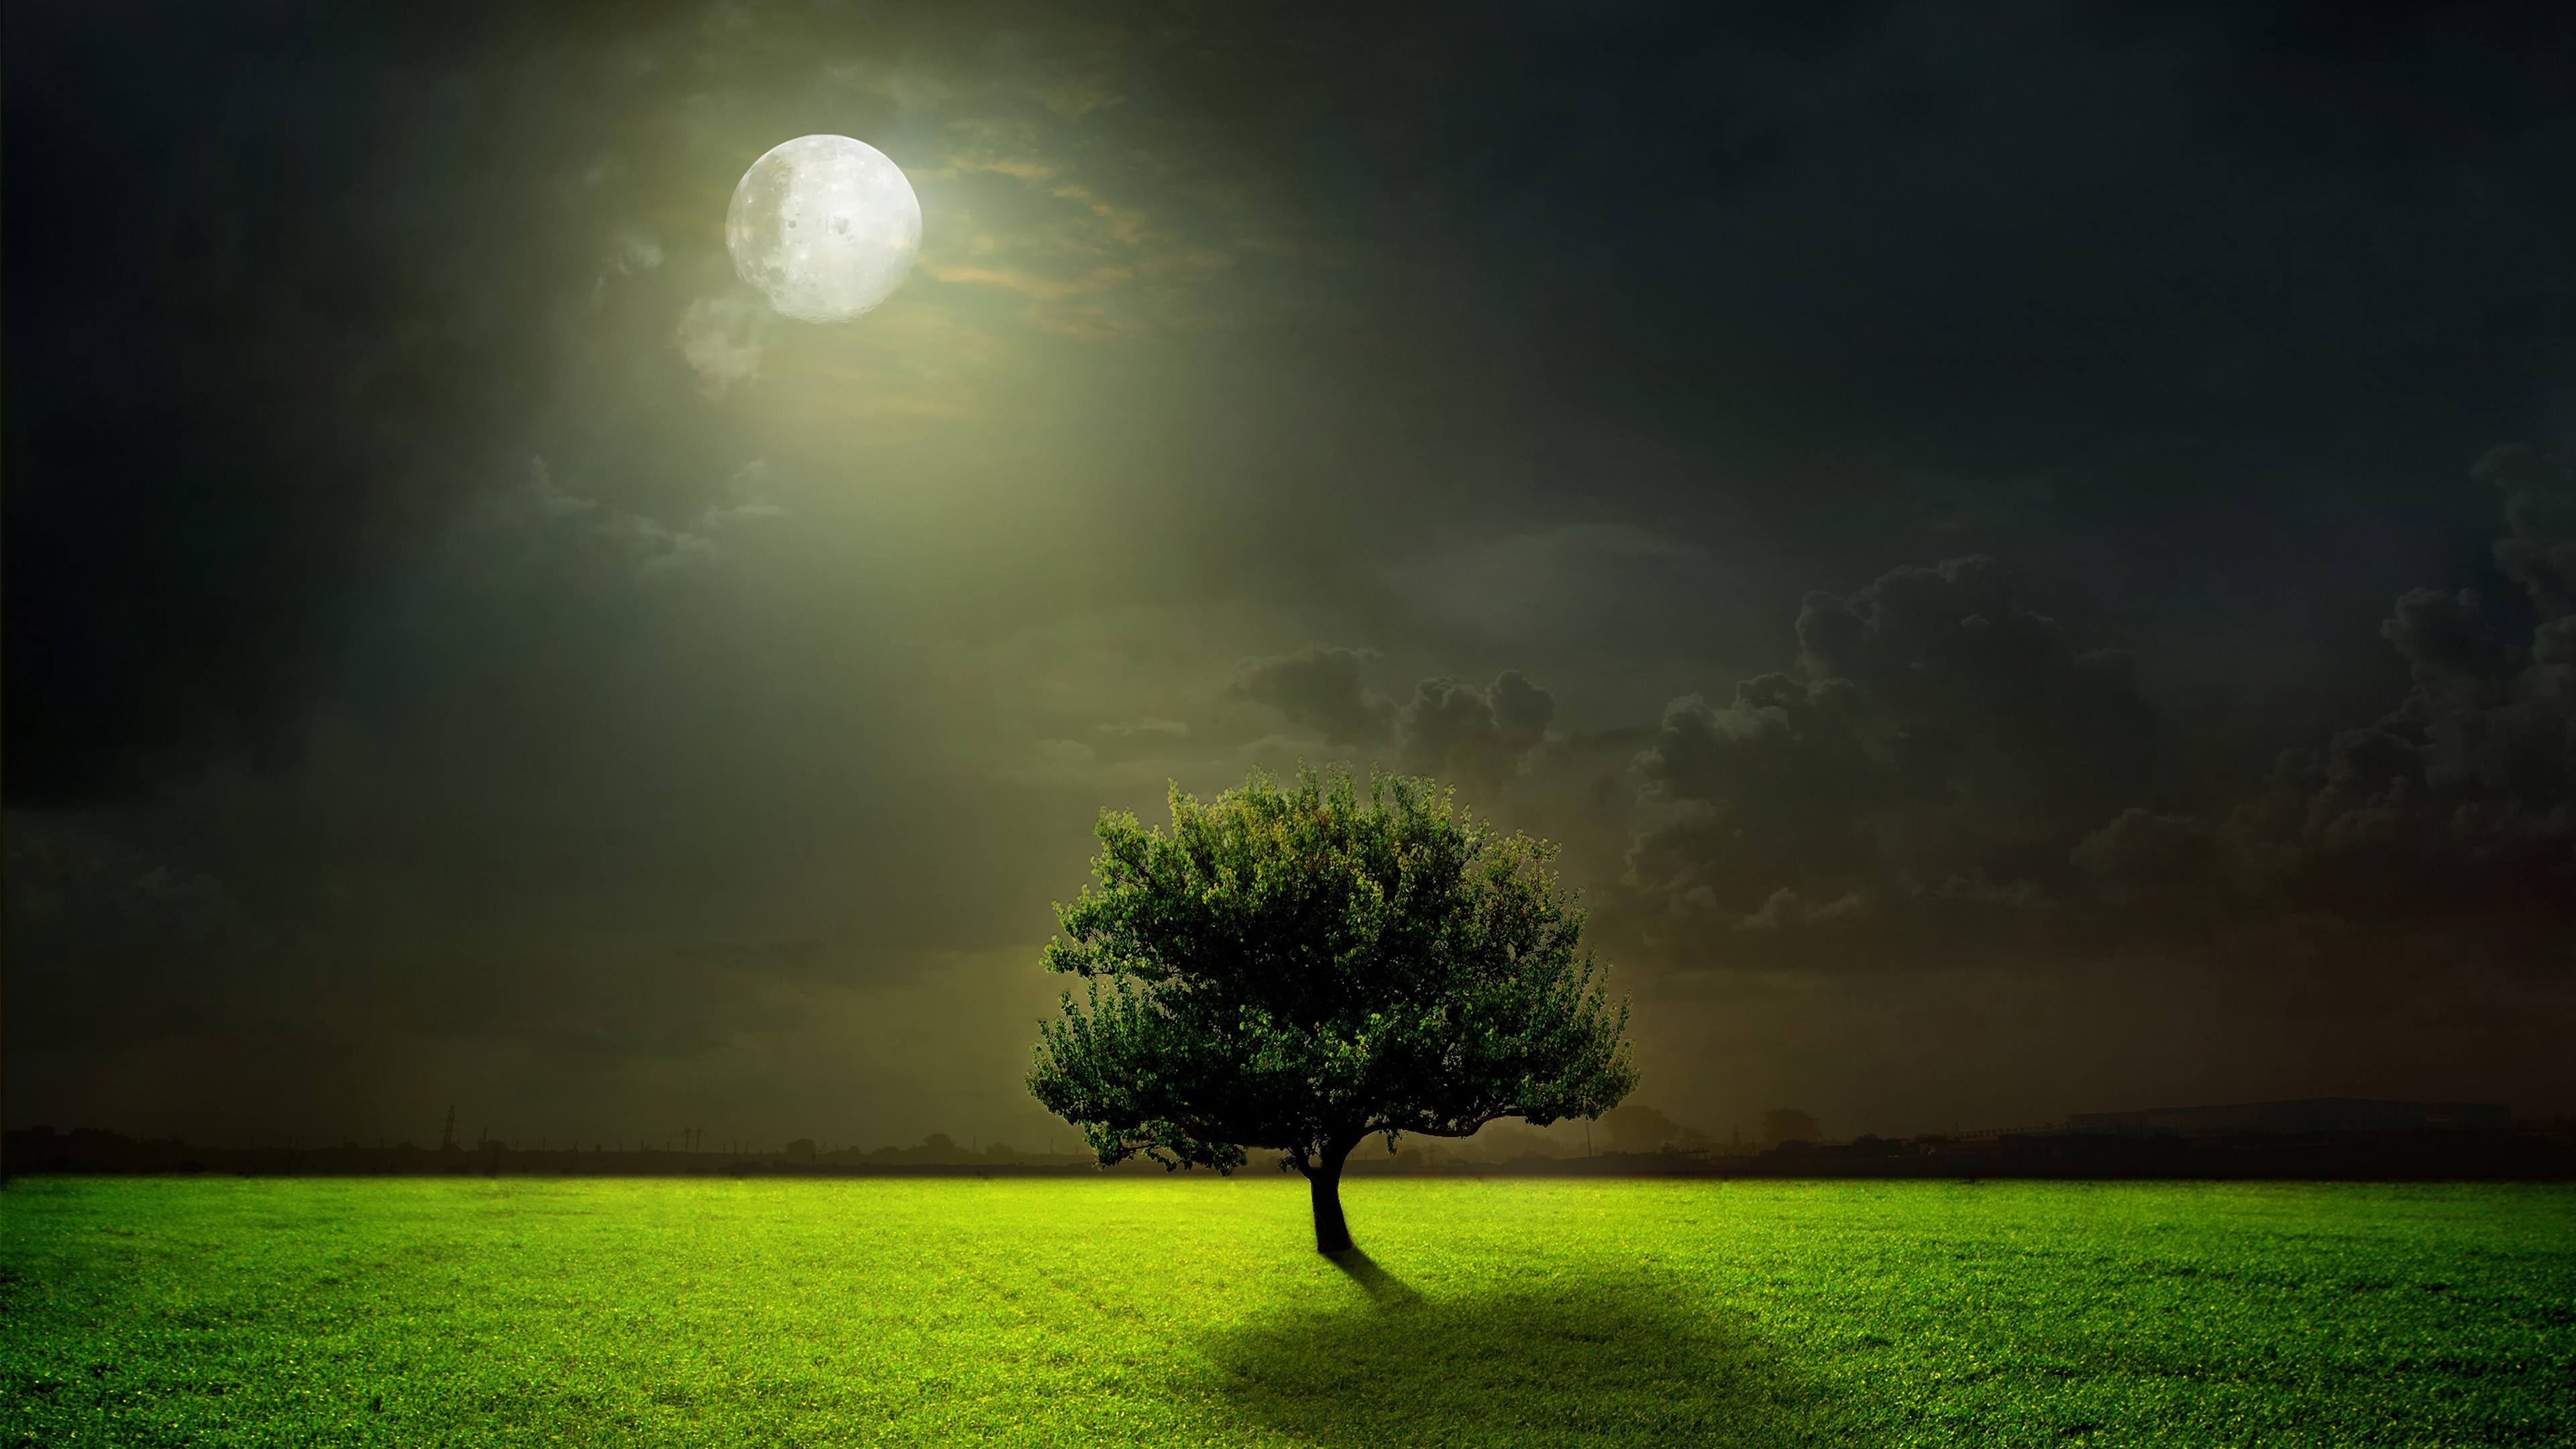 Wallpaper Meadows, 5k, 4k Wallpaper, Moon, Trees, Night